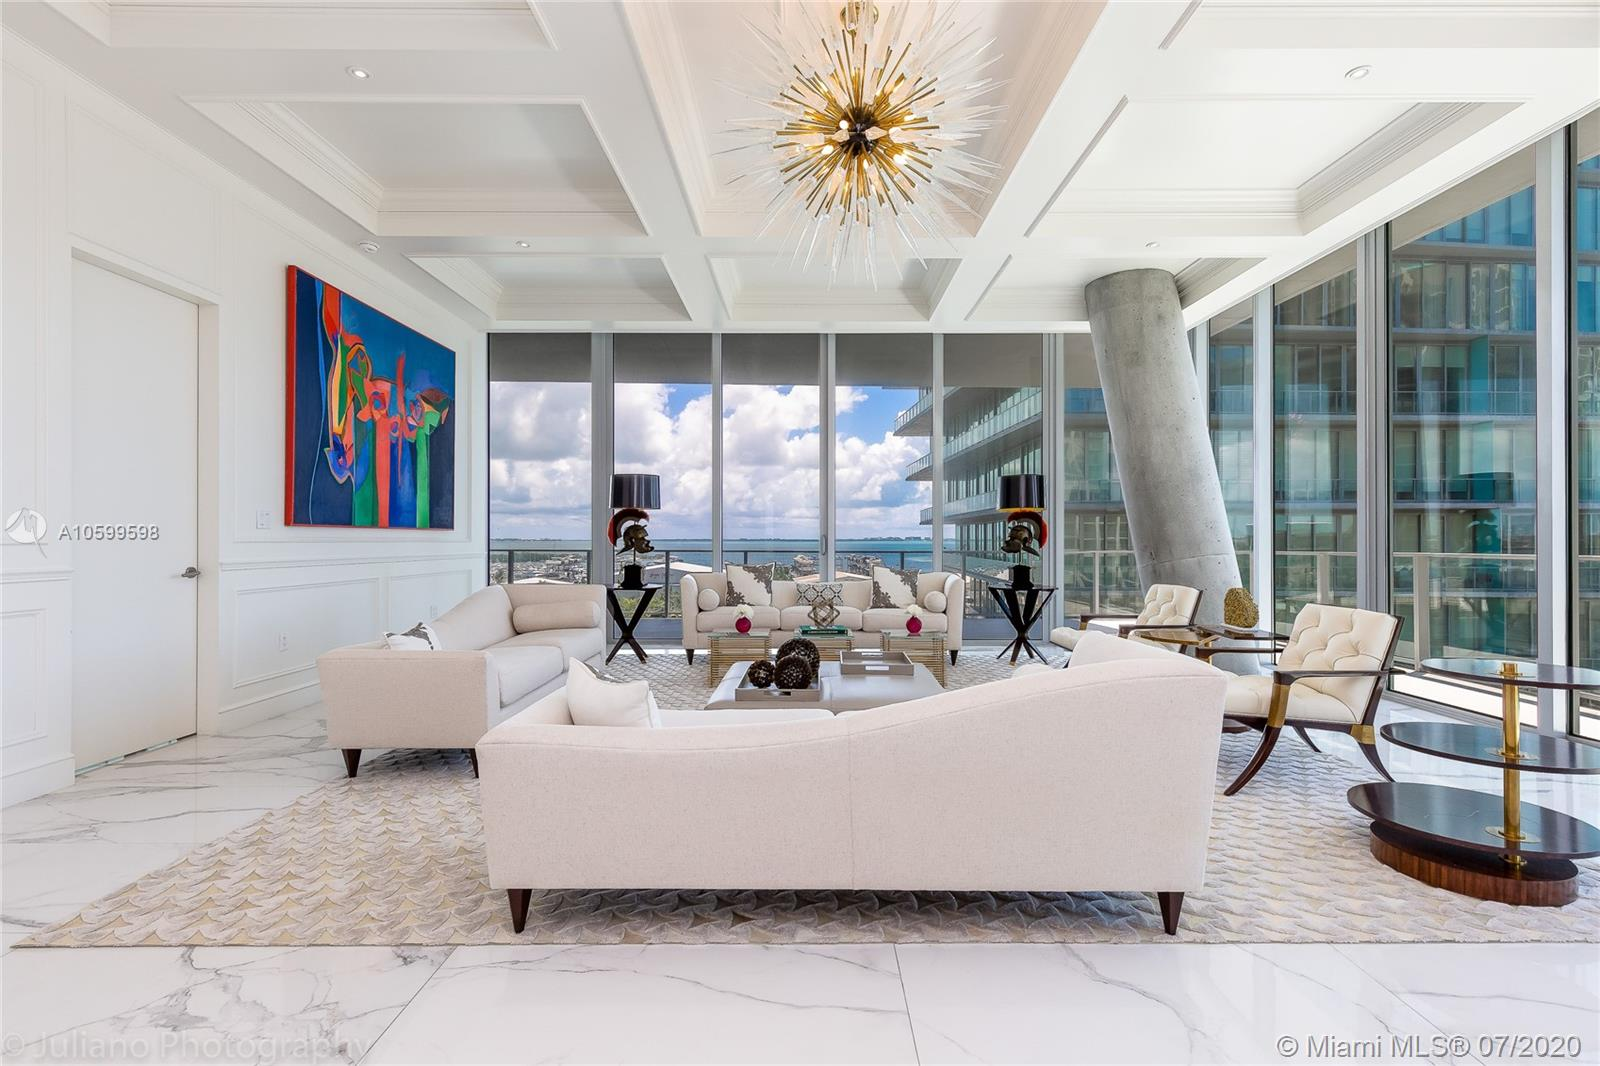 Gorgeous corner 3 bedroom plus staff quarters and 4 1/2 baths residence located in the most iconic building in Coconut Grove; Grove at Grand Bay. Designed by award winning architect Bjarke Ingels. This residence is exquisitely finished with vaulted ceilings, leather accent walls, custom woodwork, and much more. A must see. Private elevators take you directly into residence with magnificent South East exposures of the Bay. Over $400k in finishes. Most sought after building in Coconut Grove. If private, boutique and exclusivity is what you are looking for, this is the building for you. Wrap around terrace. Miele stainless steal appliances, Snaidero Cabinetry, Gas cooking. A home in the sky. Gorgeous landscaping by Raymond Jungles. Service is superb. Private Restaurant for owners.